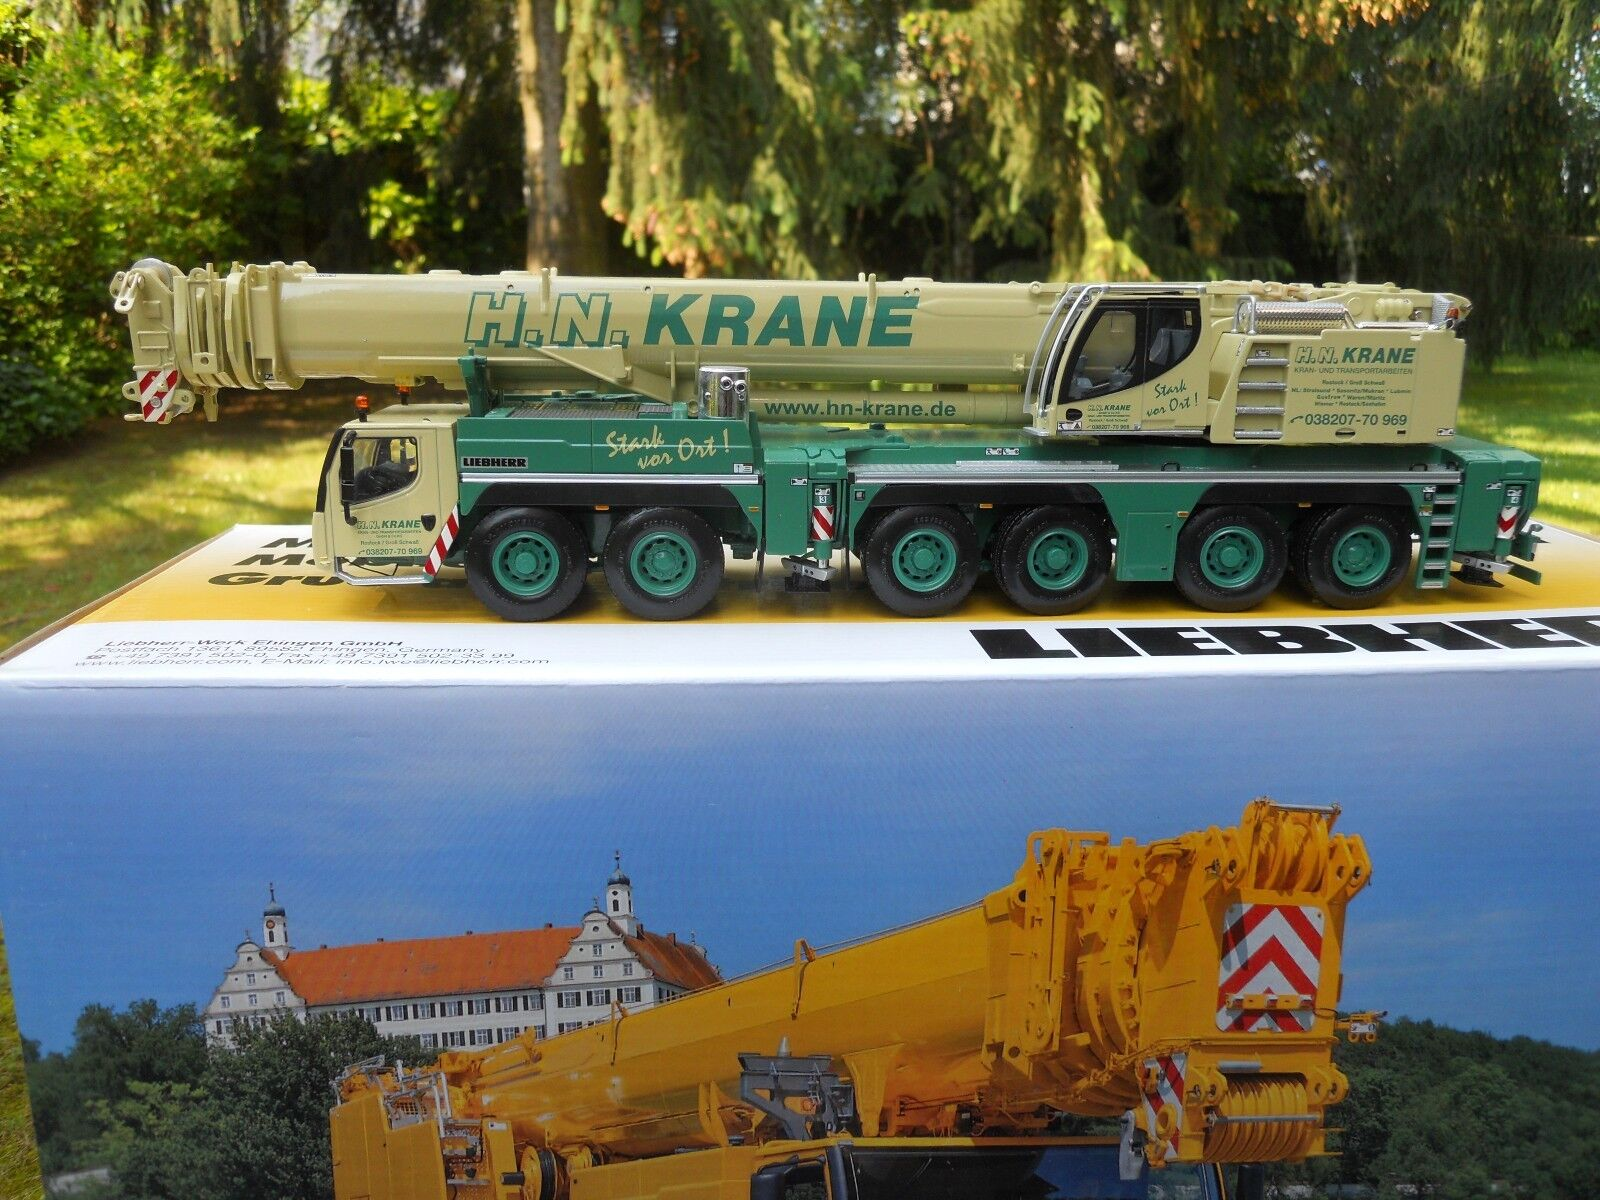 WSI MODELS 01-1433 LIEBHERR LTM 1350-6.1 HN. KRANE (D) MINIATURE MINT CONDITION